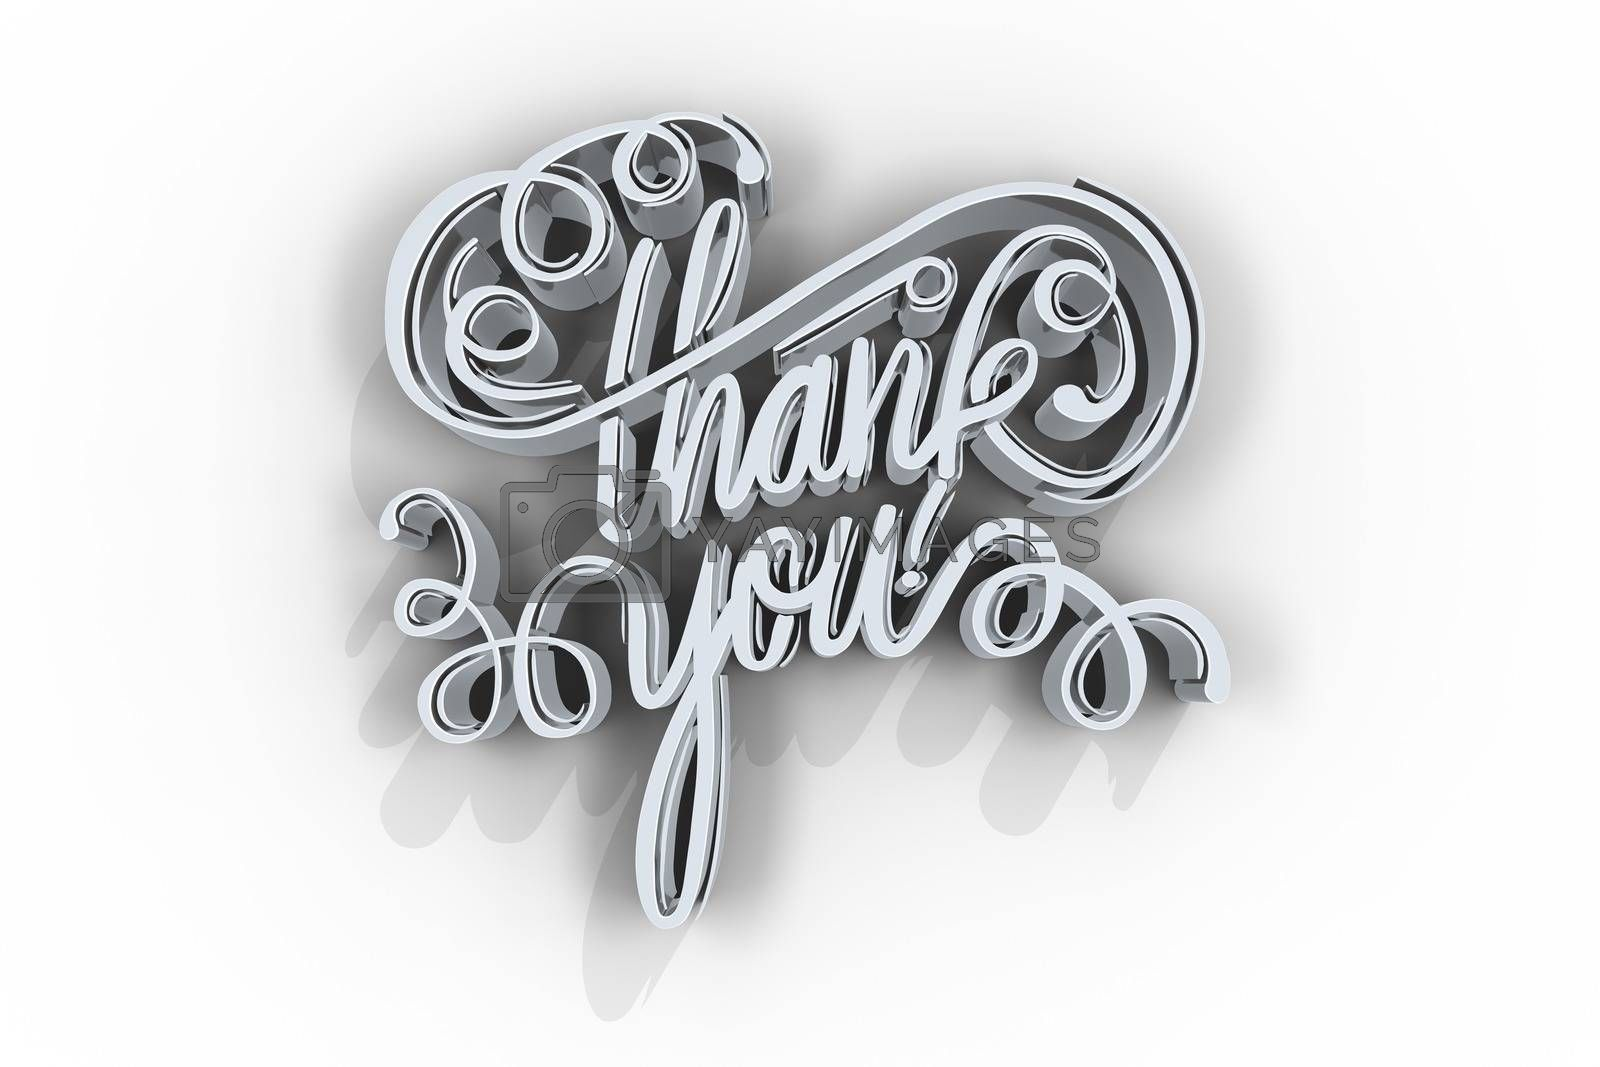 Digitally generated image of thank you text over plain background